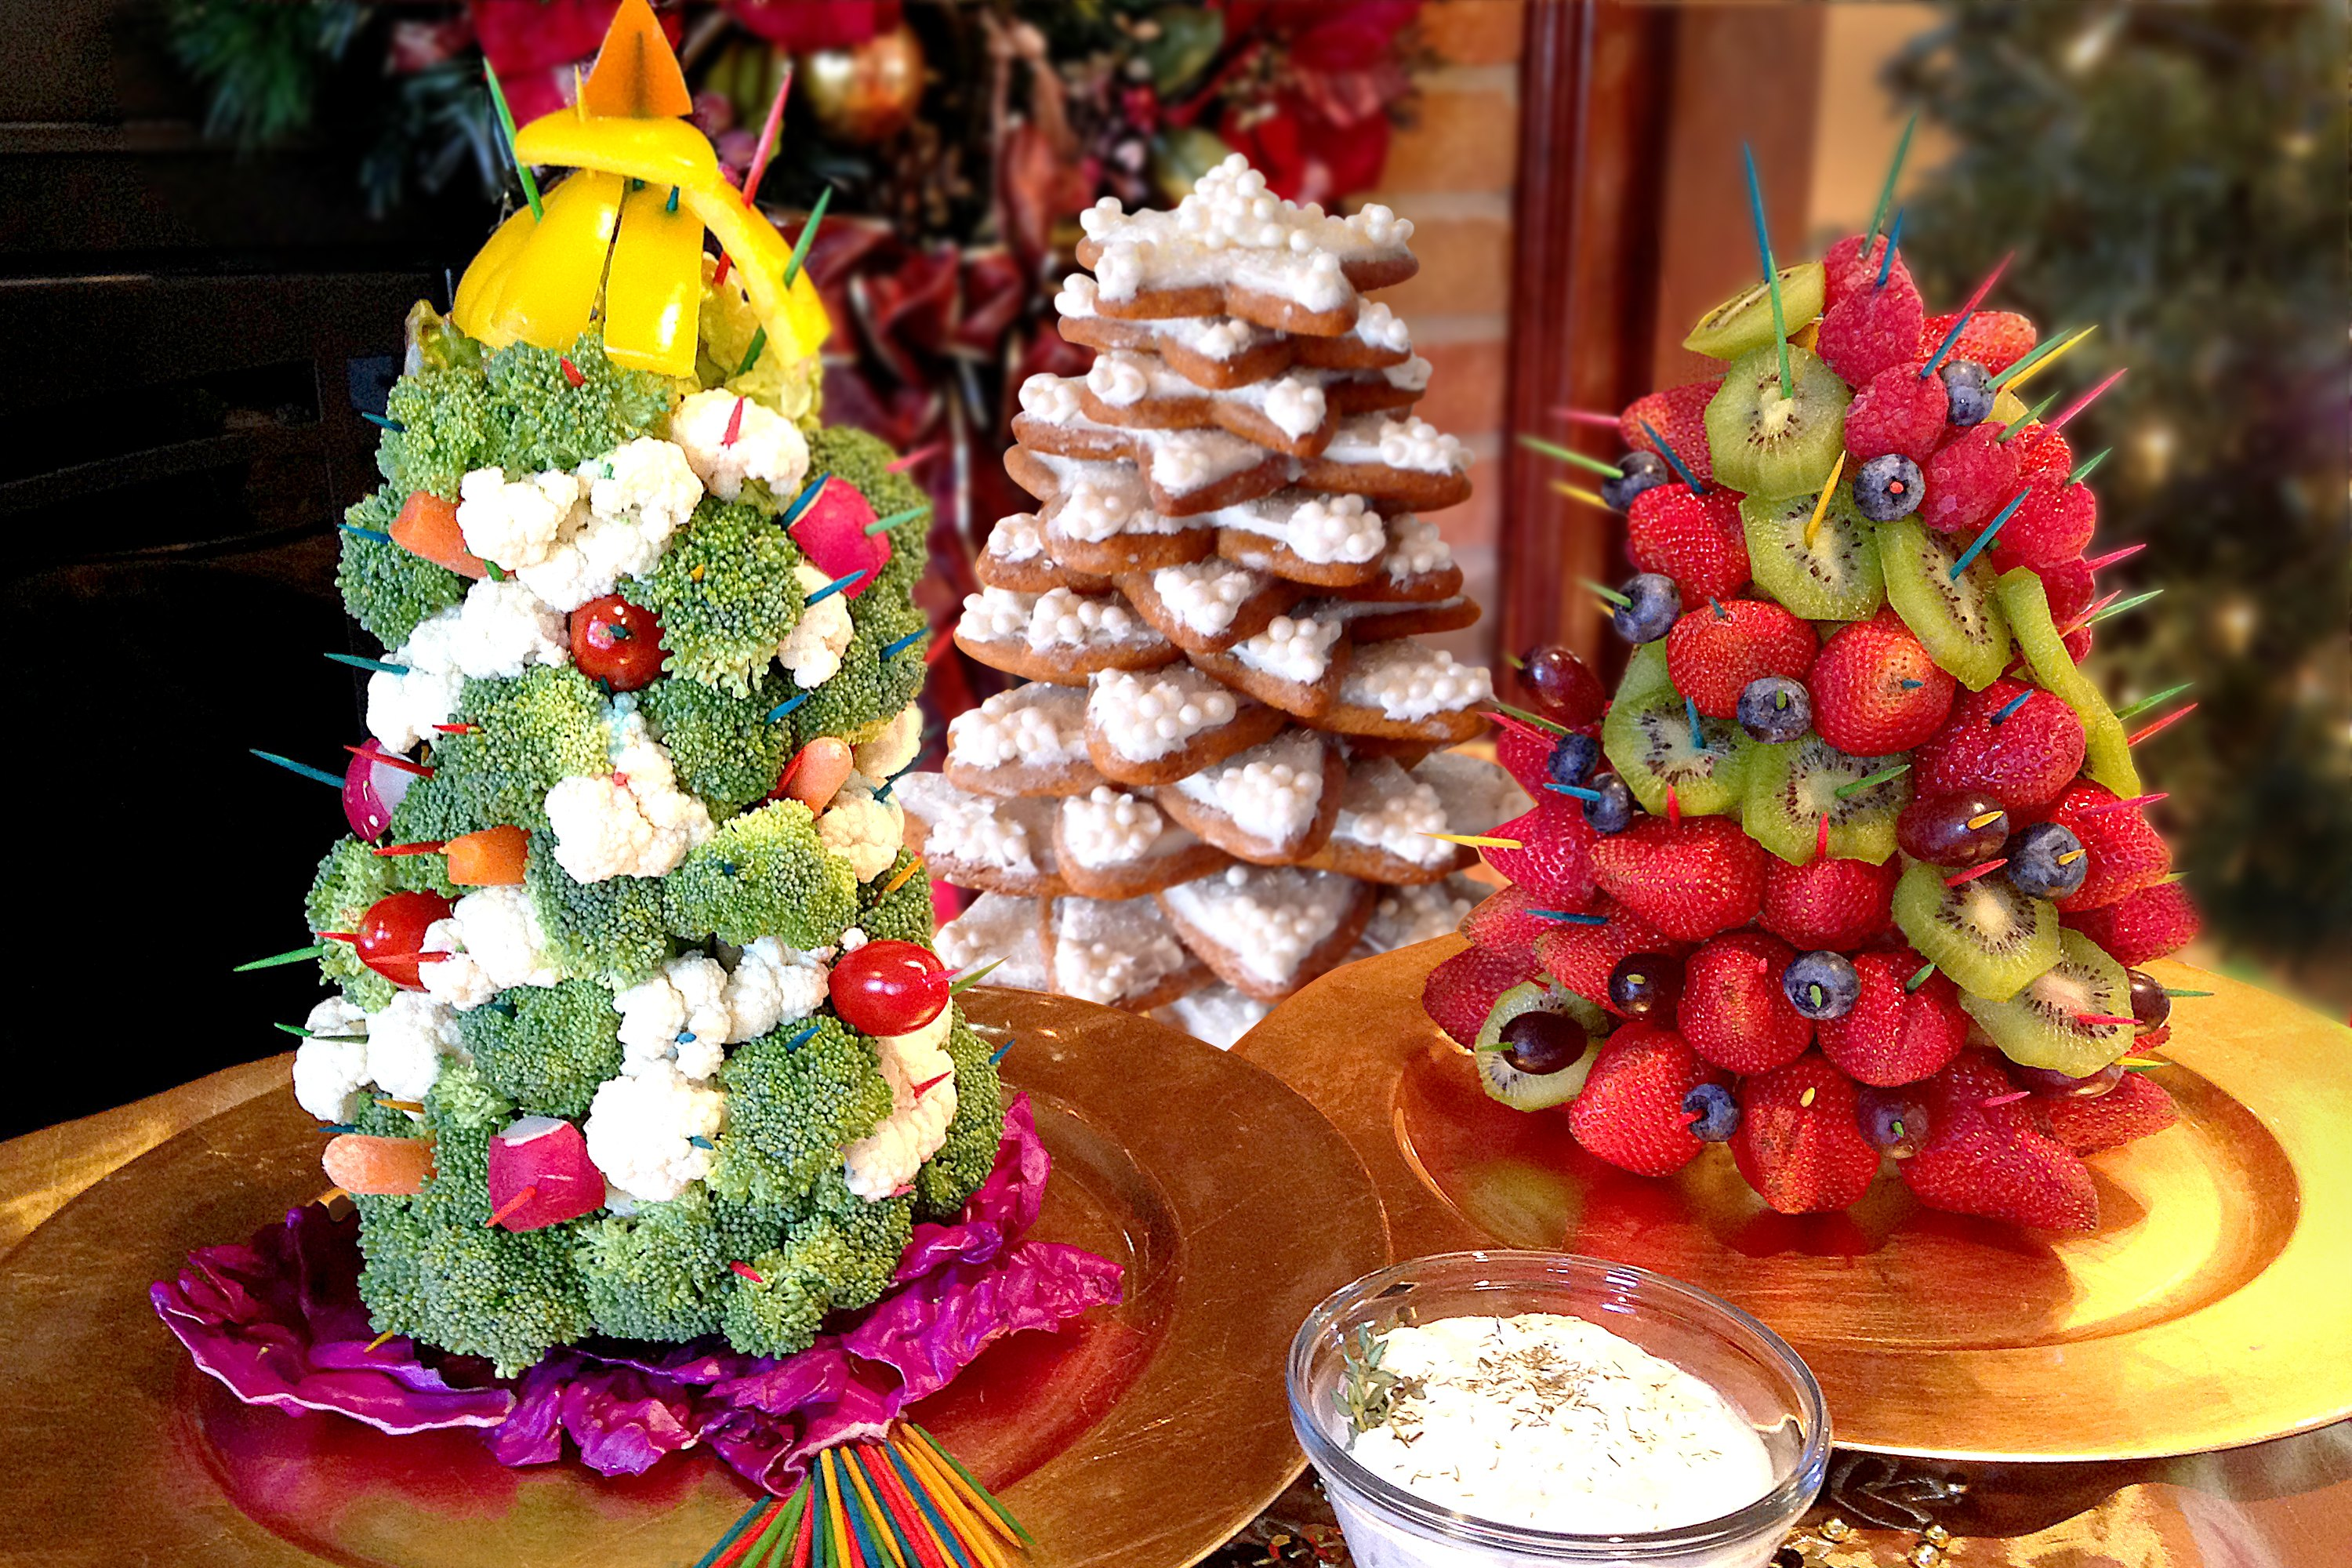 How To Make An Edible Christmas Tree (with Pictures)